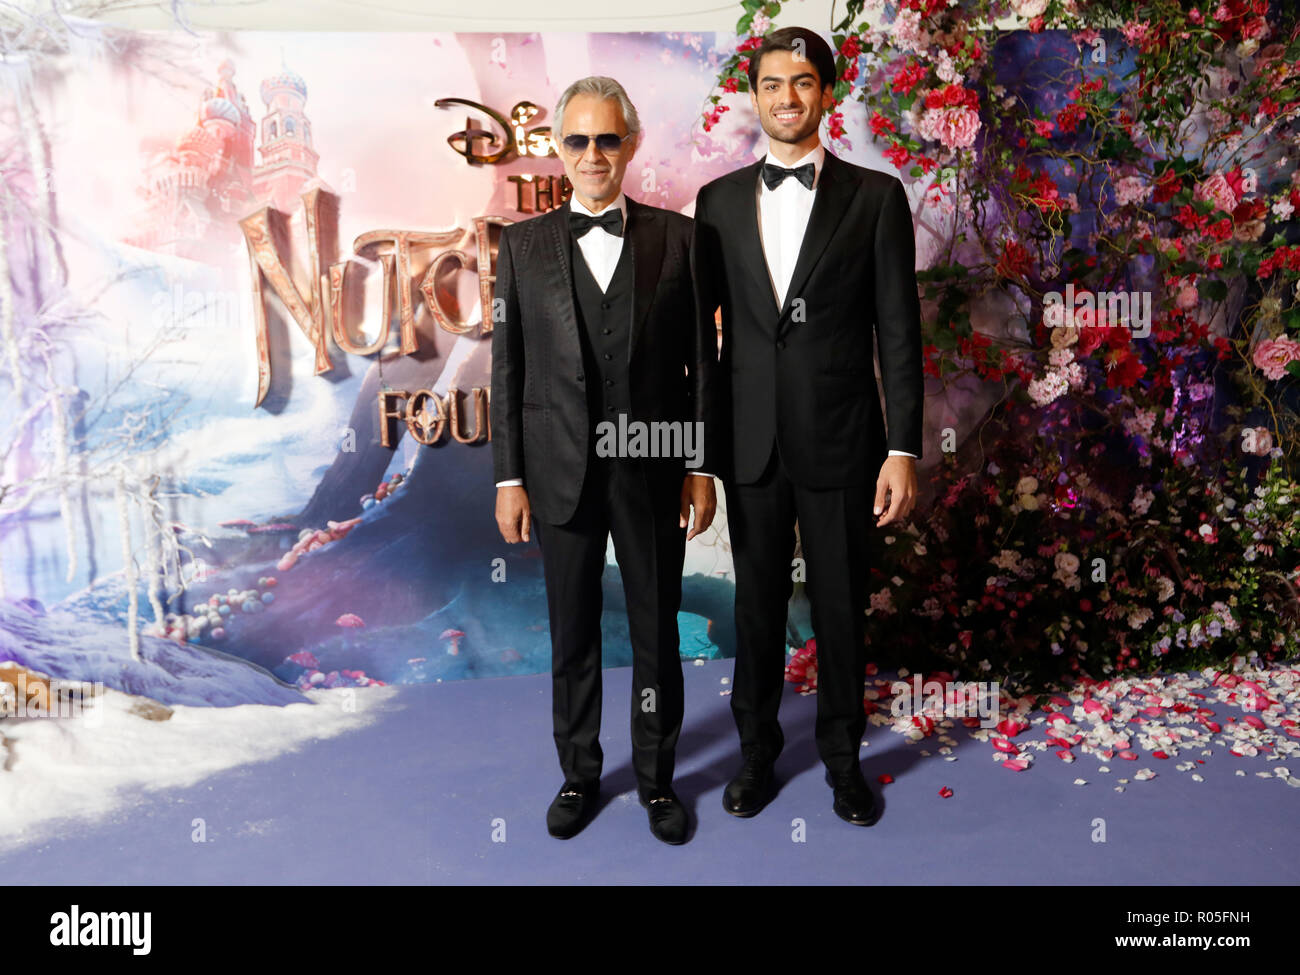 Andrea Bocelli (left) and Matteo Bocelli attending the European Premiere of The Nutcracker and the Four Realms held at the Vue, Westfield London. PRESS ASSOCIATION Photo. Picture date: Thursday November 1, 2018. Photo credit should read: David Parry/PA Wire - Stock Image